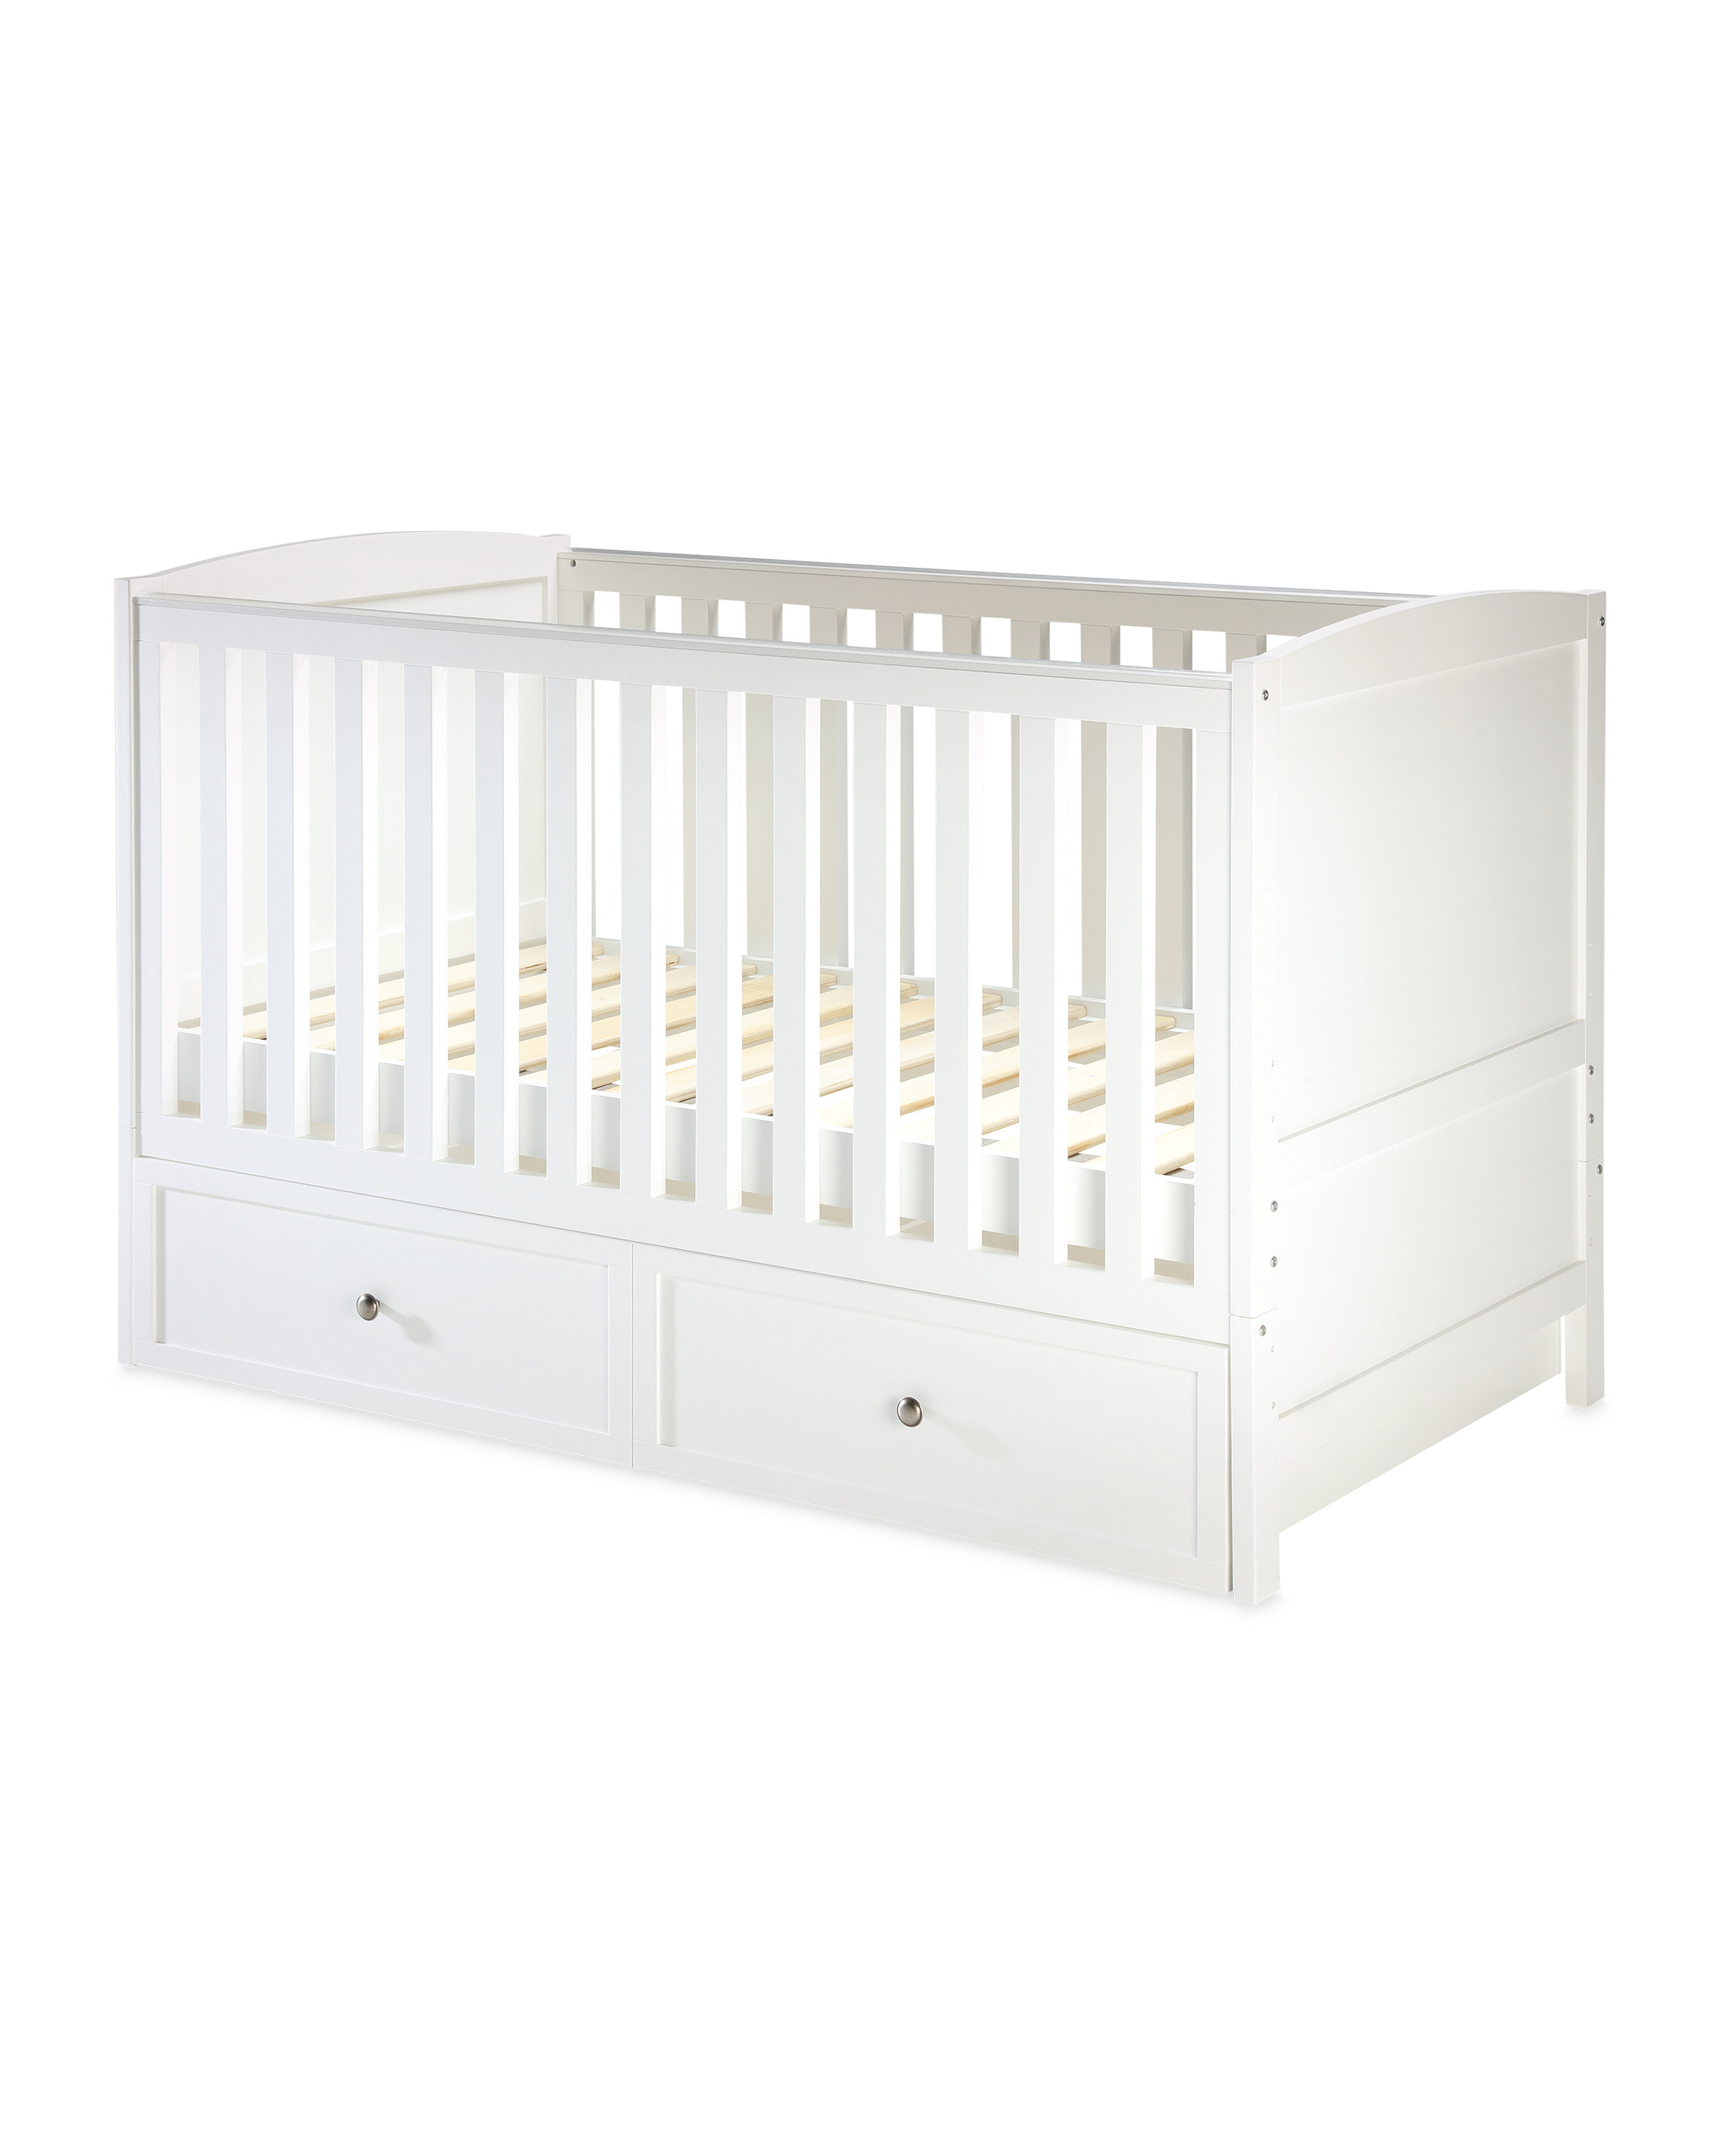 nursery cot bed with drawer aldi uk